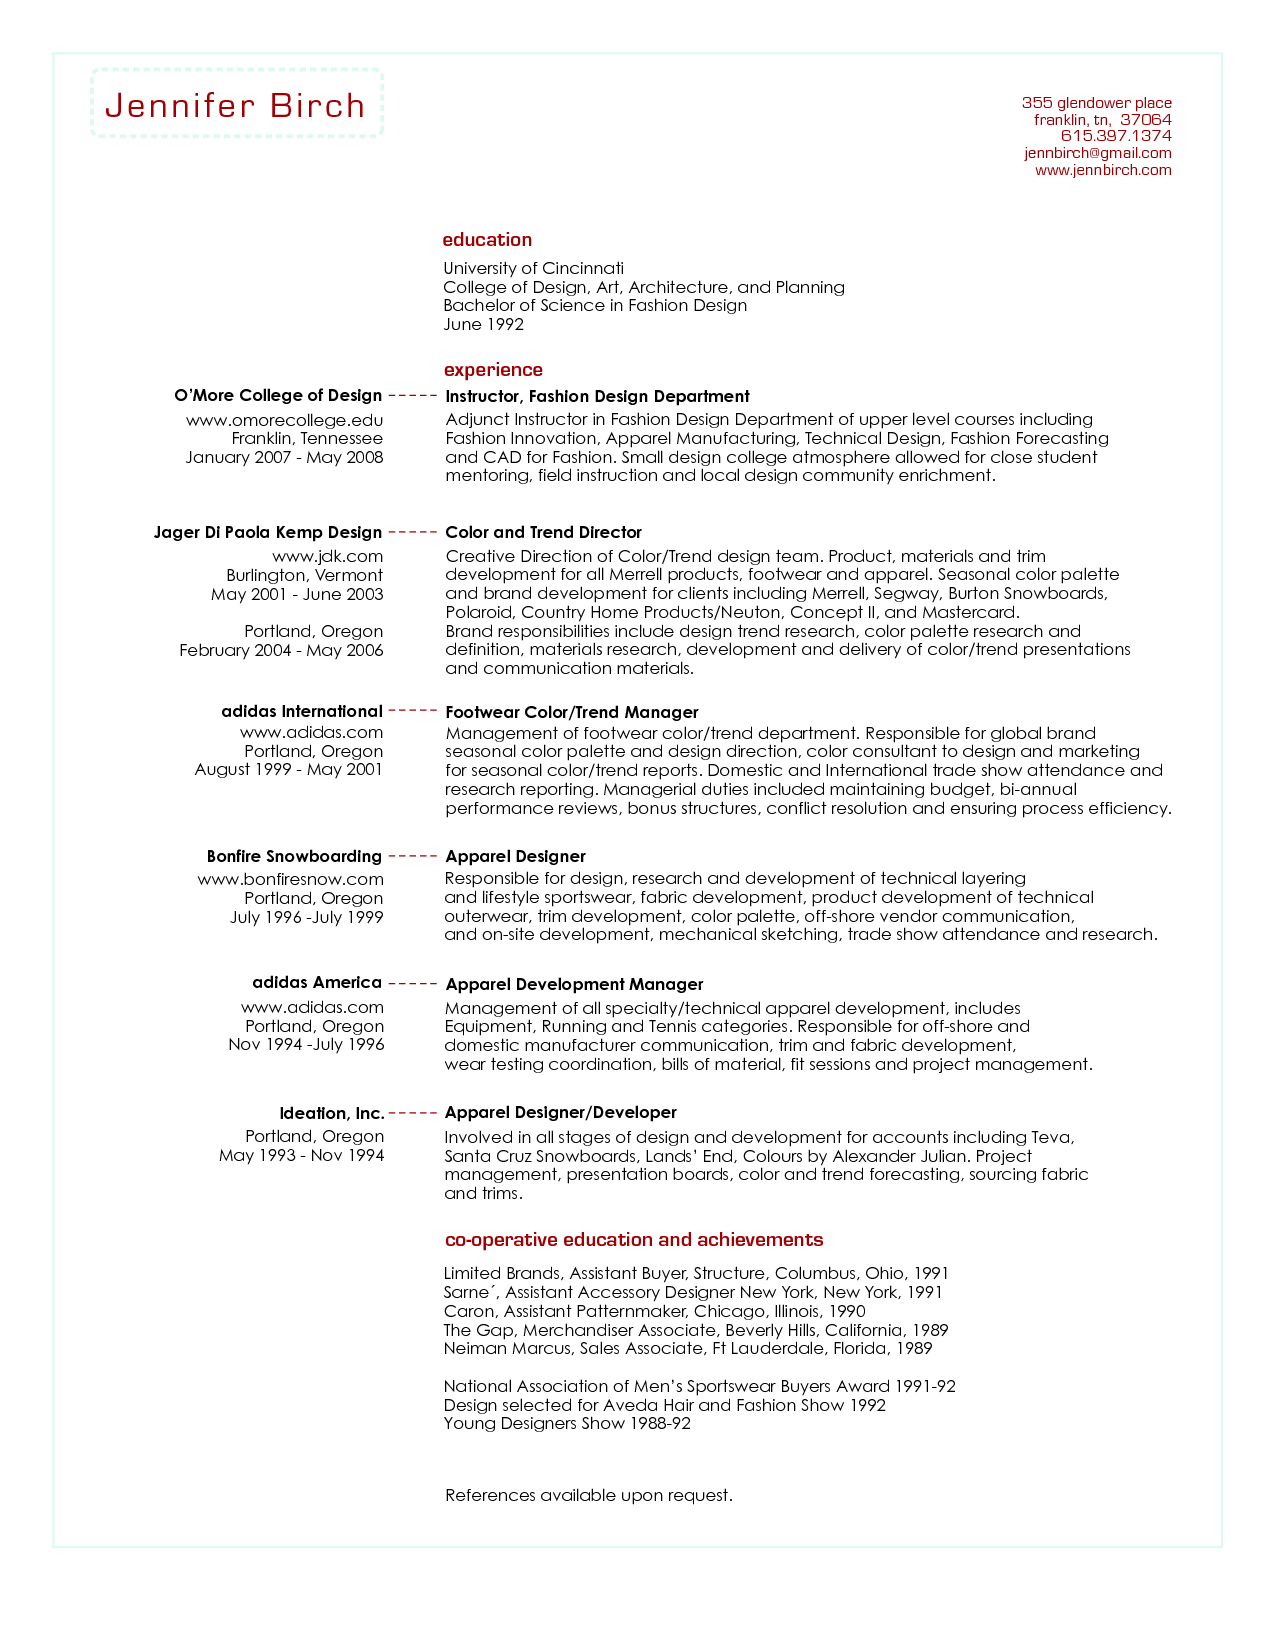 sample resume for fashion retail job professional resume cover sample resume for fashion retail job fashion retail entry level sample resume career faqs fashion merchandising